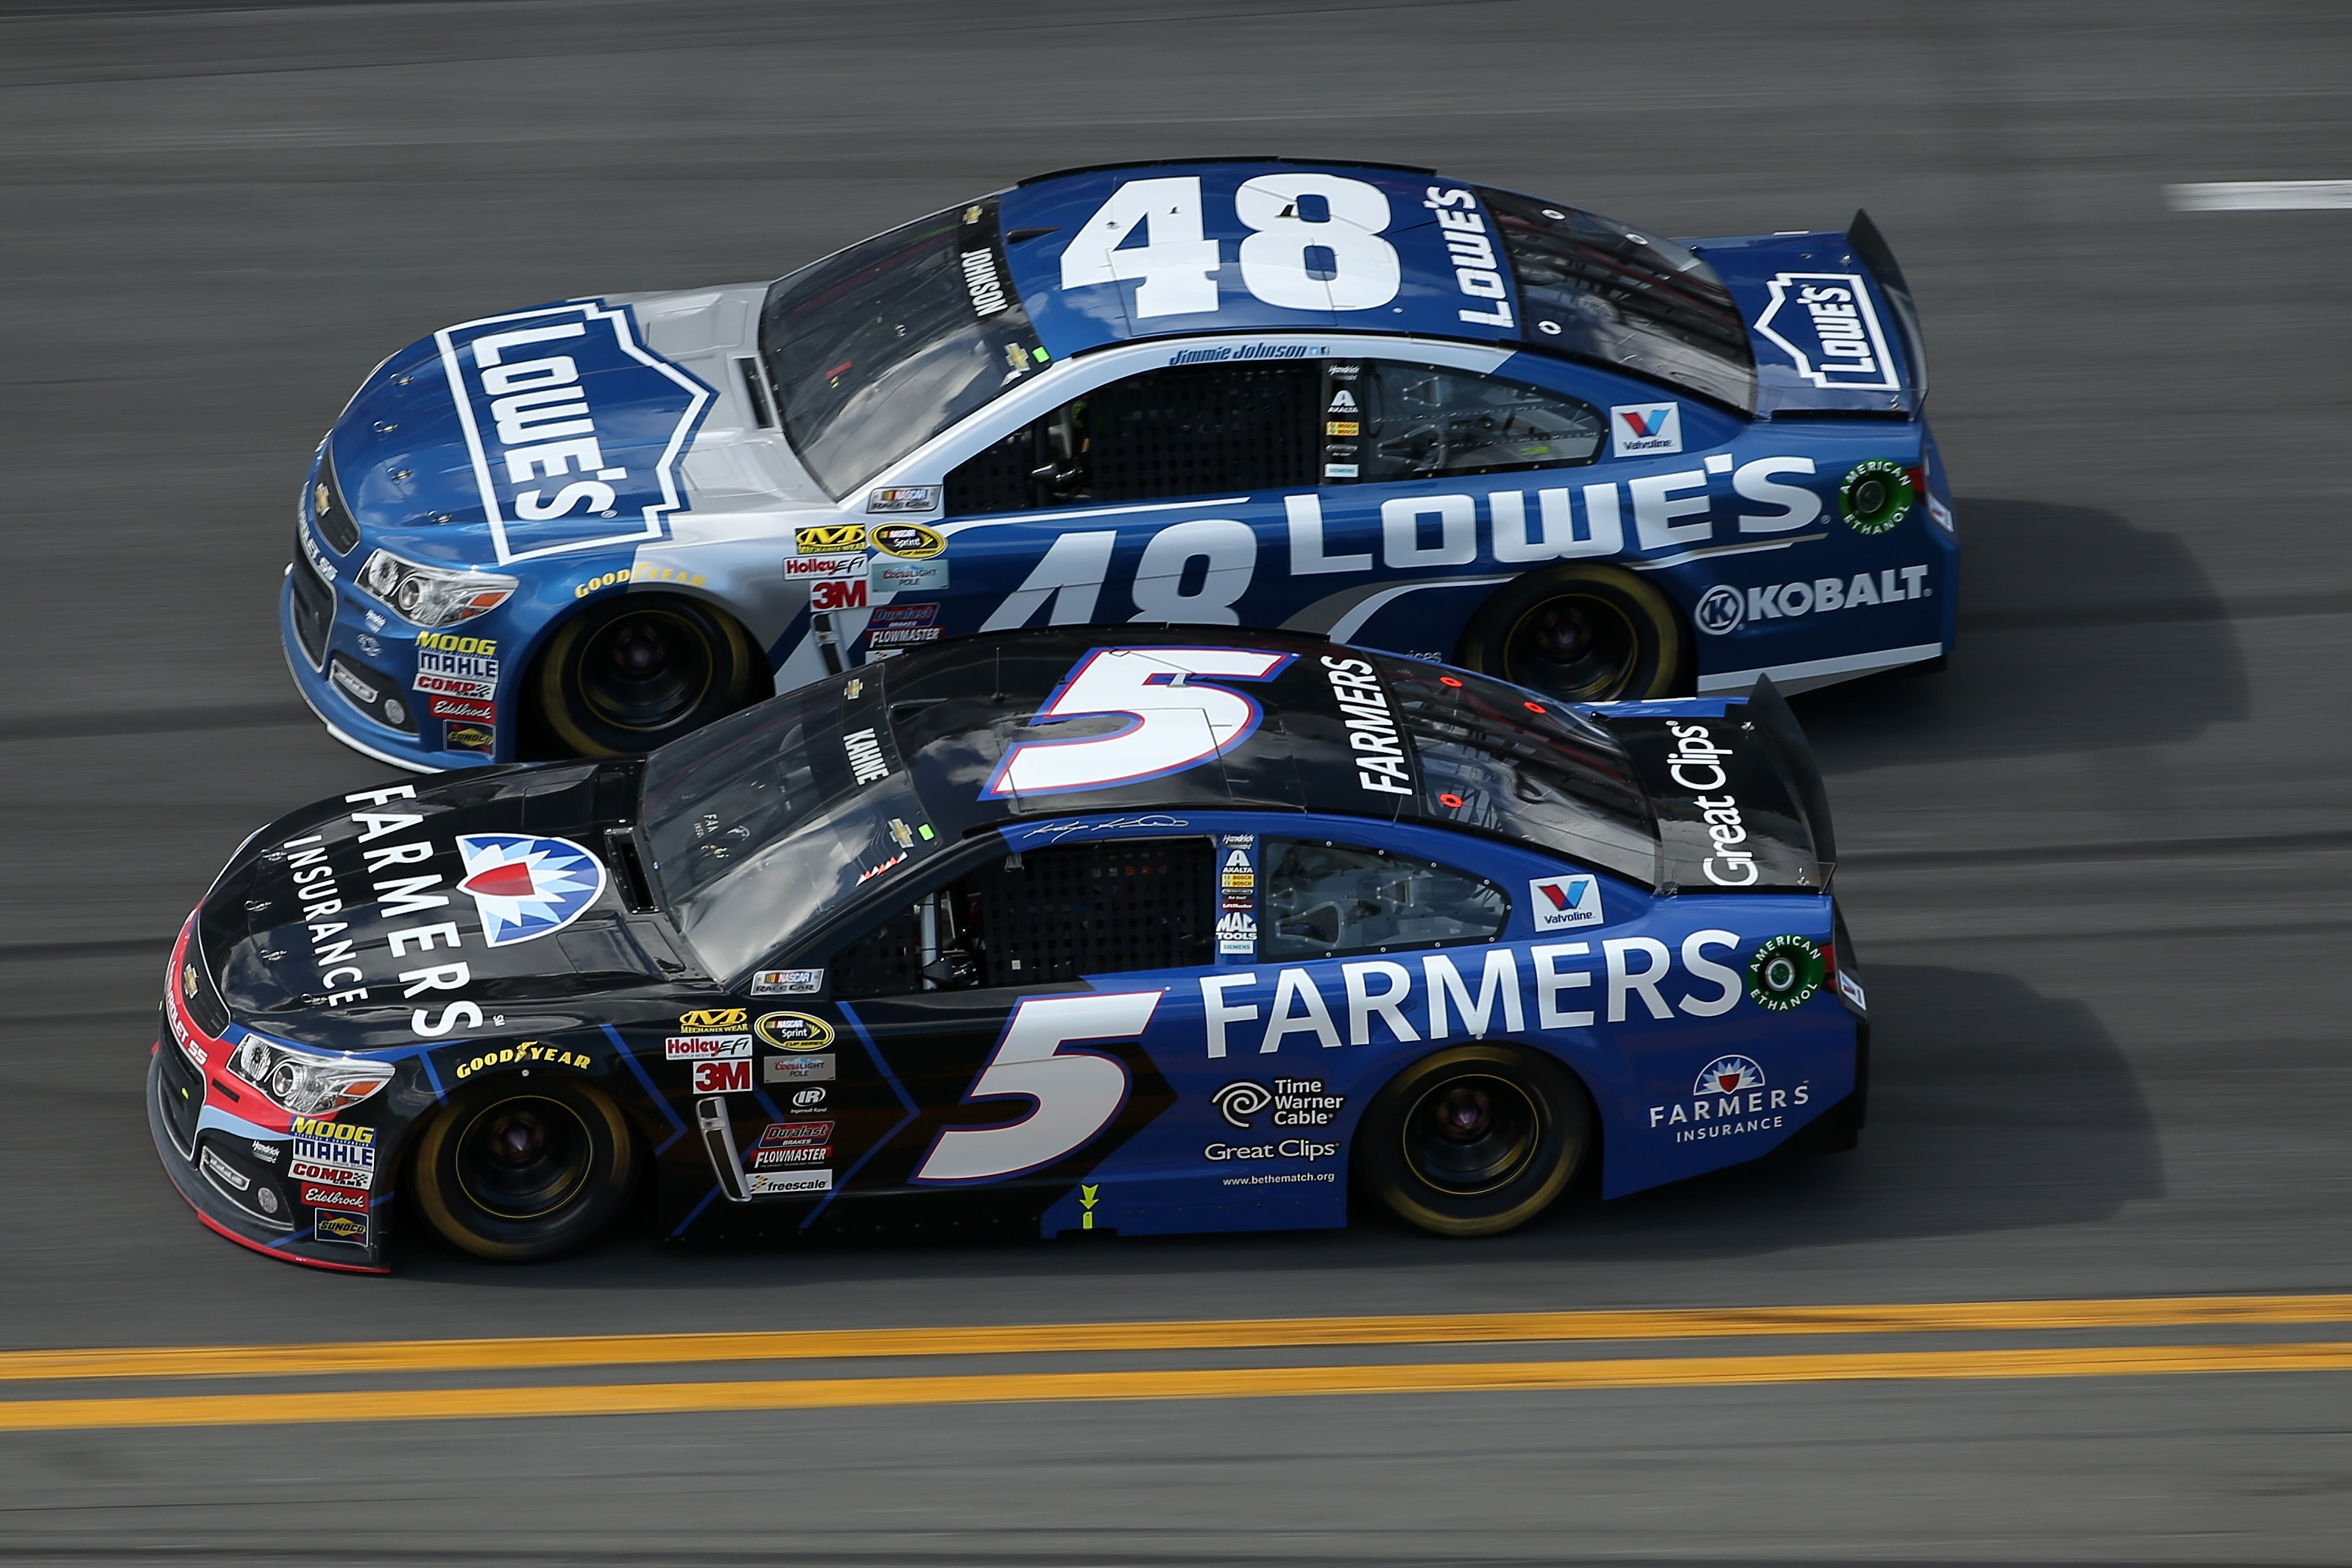 Drivers disappointed to leave Daytona without a win, but ...